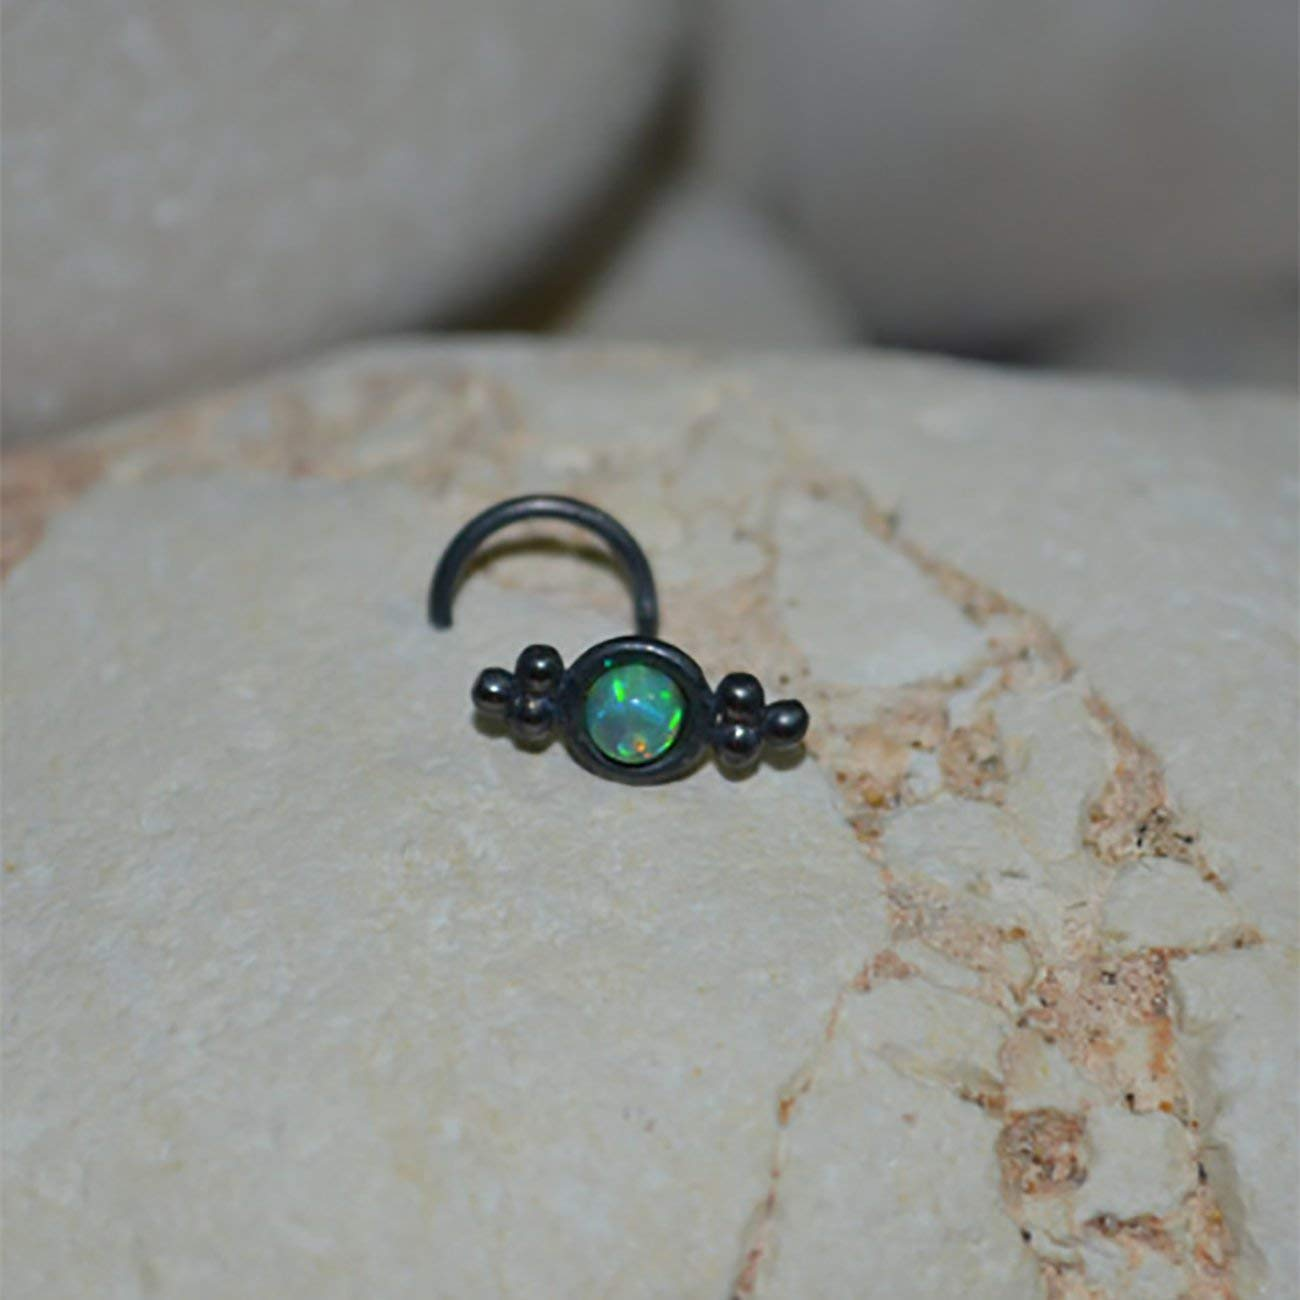 3mm Kiwi Green Opal NOSE STUD // Silver Nose Piercing - Helix Jewelry - Cartilage Earring - Tragus Ring - Nose Ring - Conch Jewelry 20g